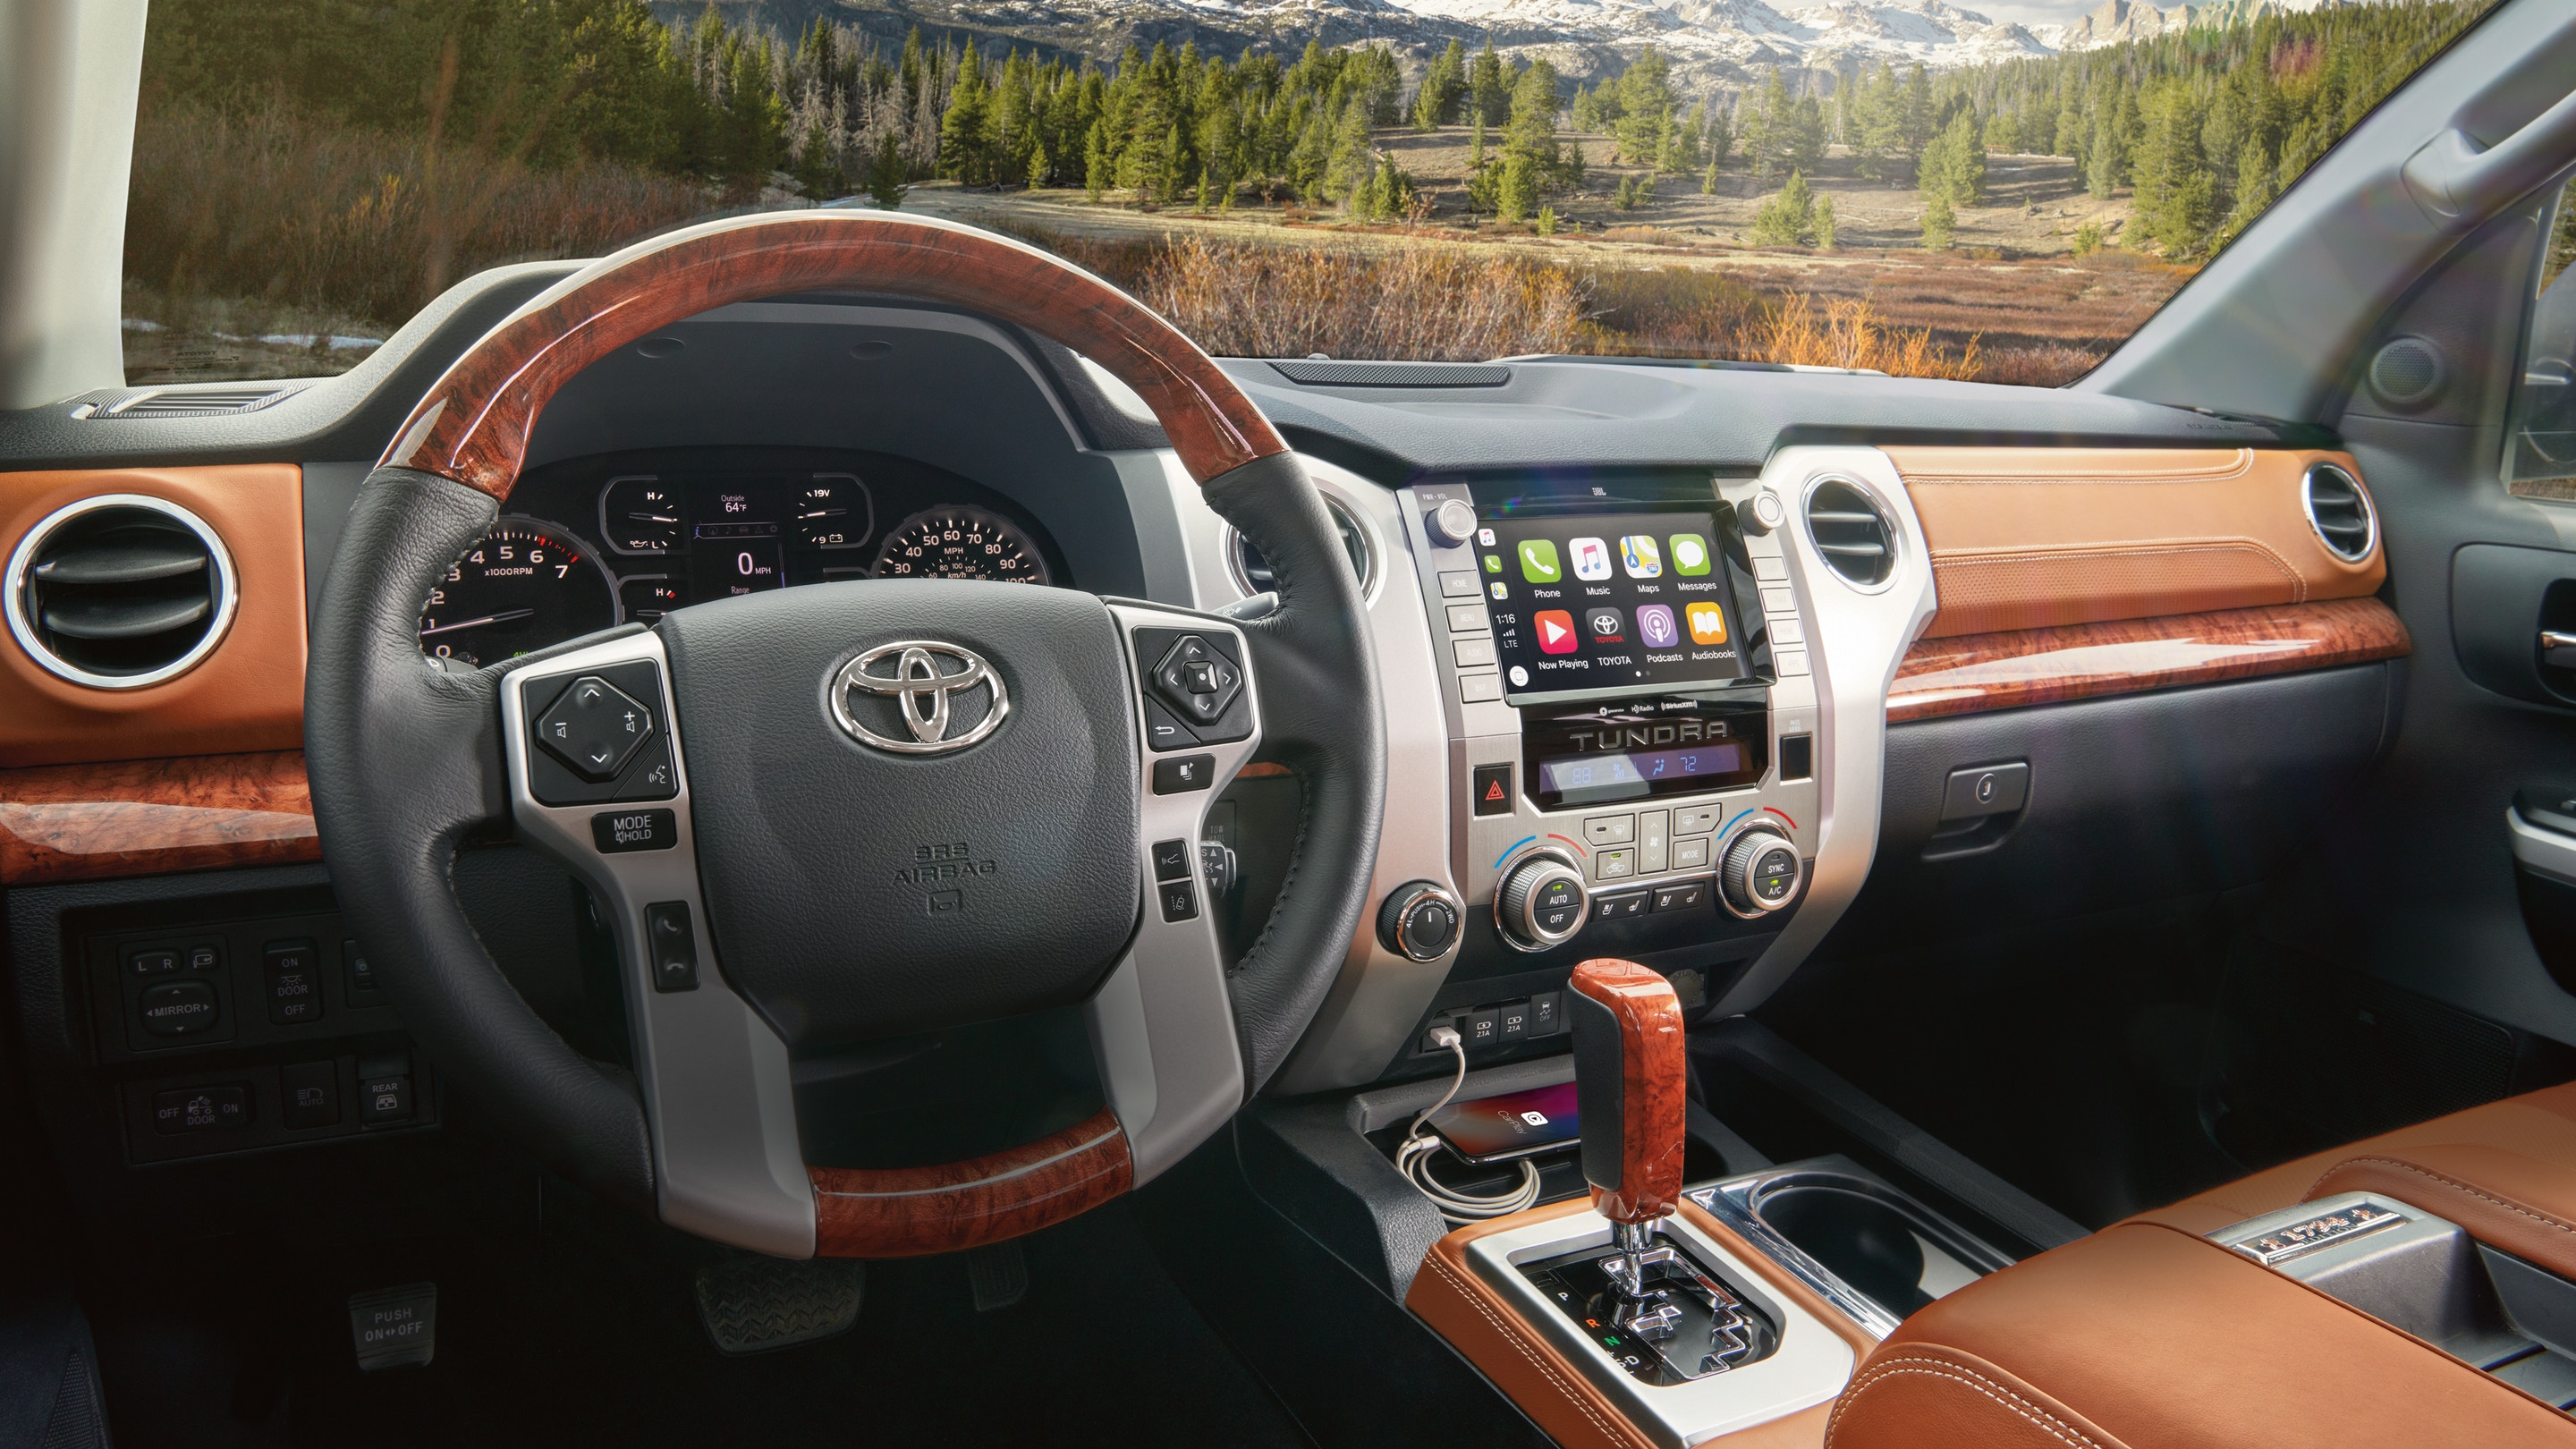 Interior of the 2020 Tundra